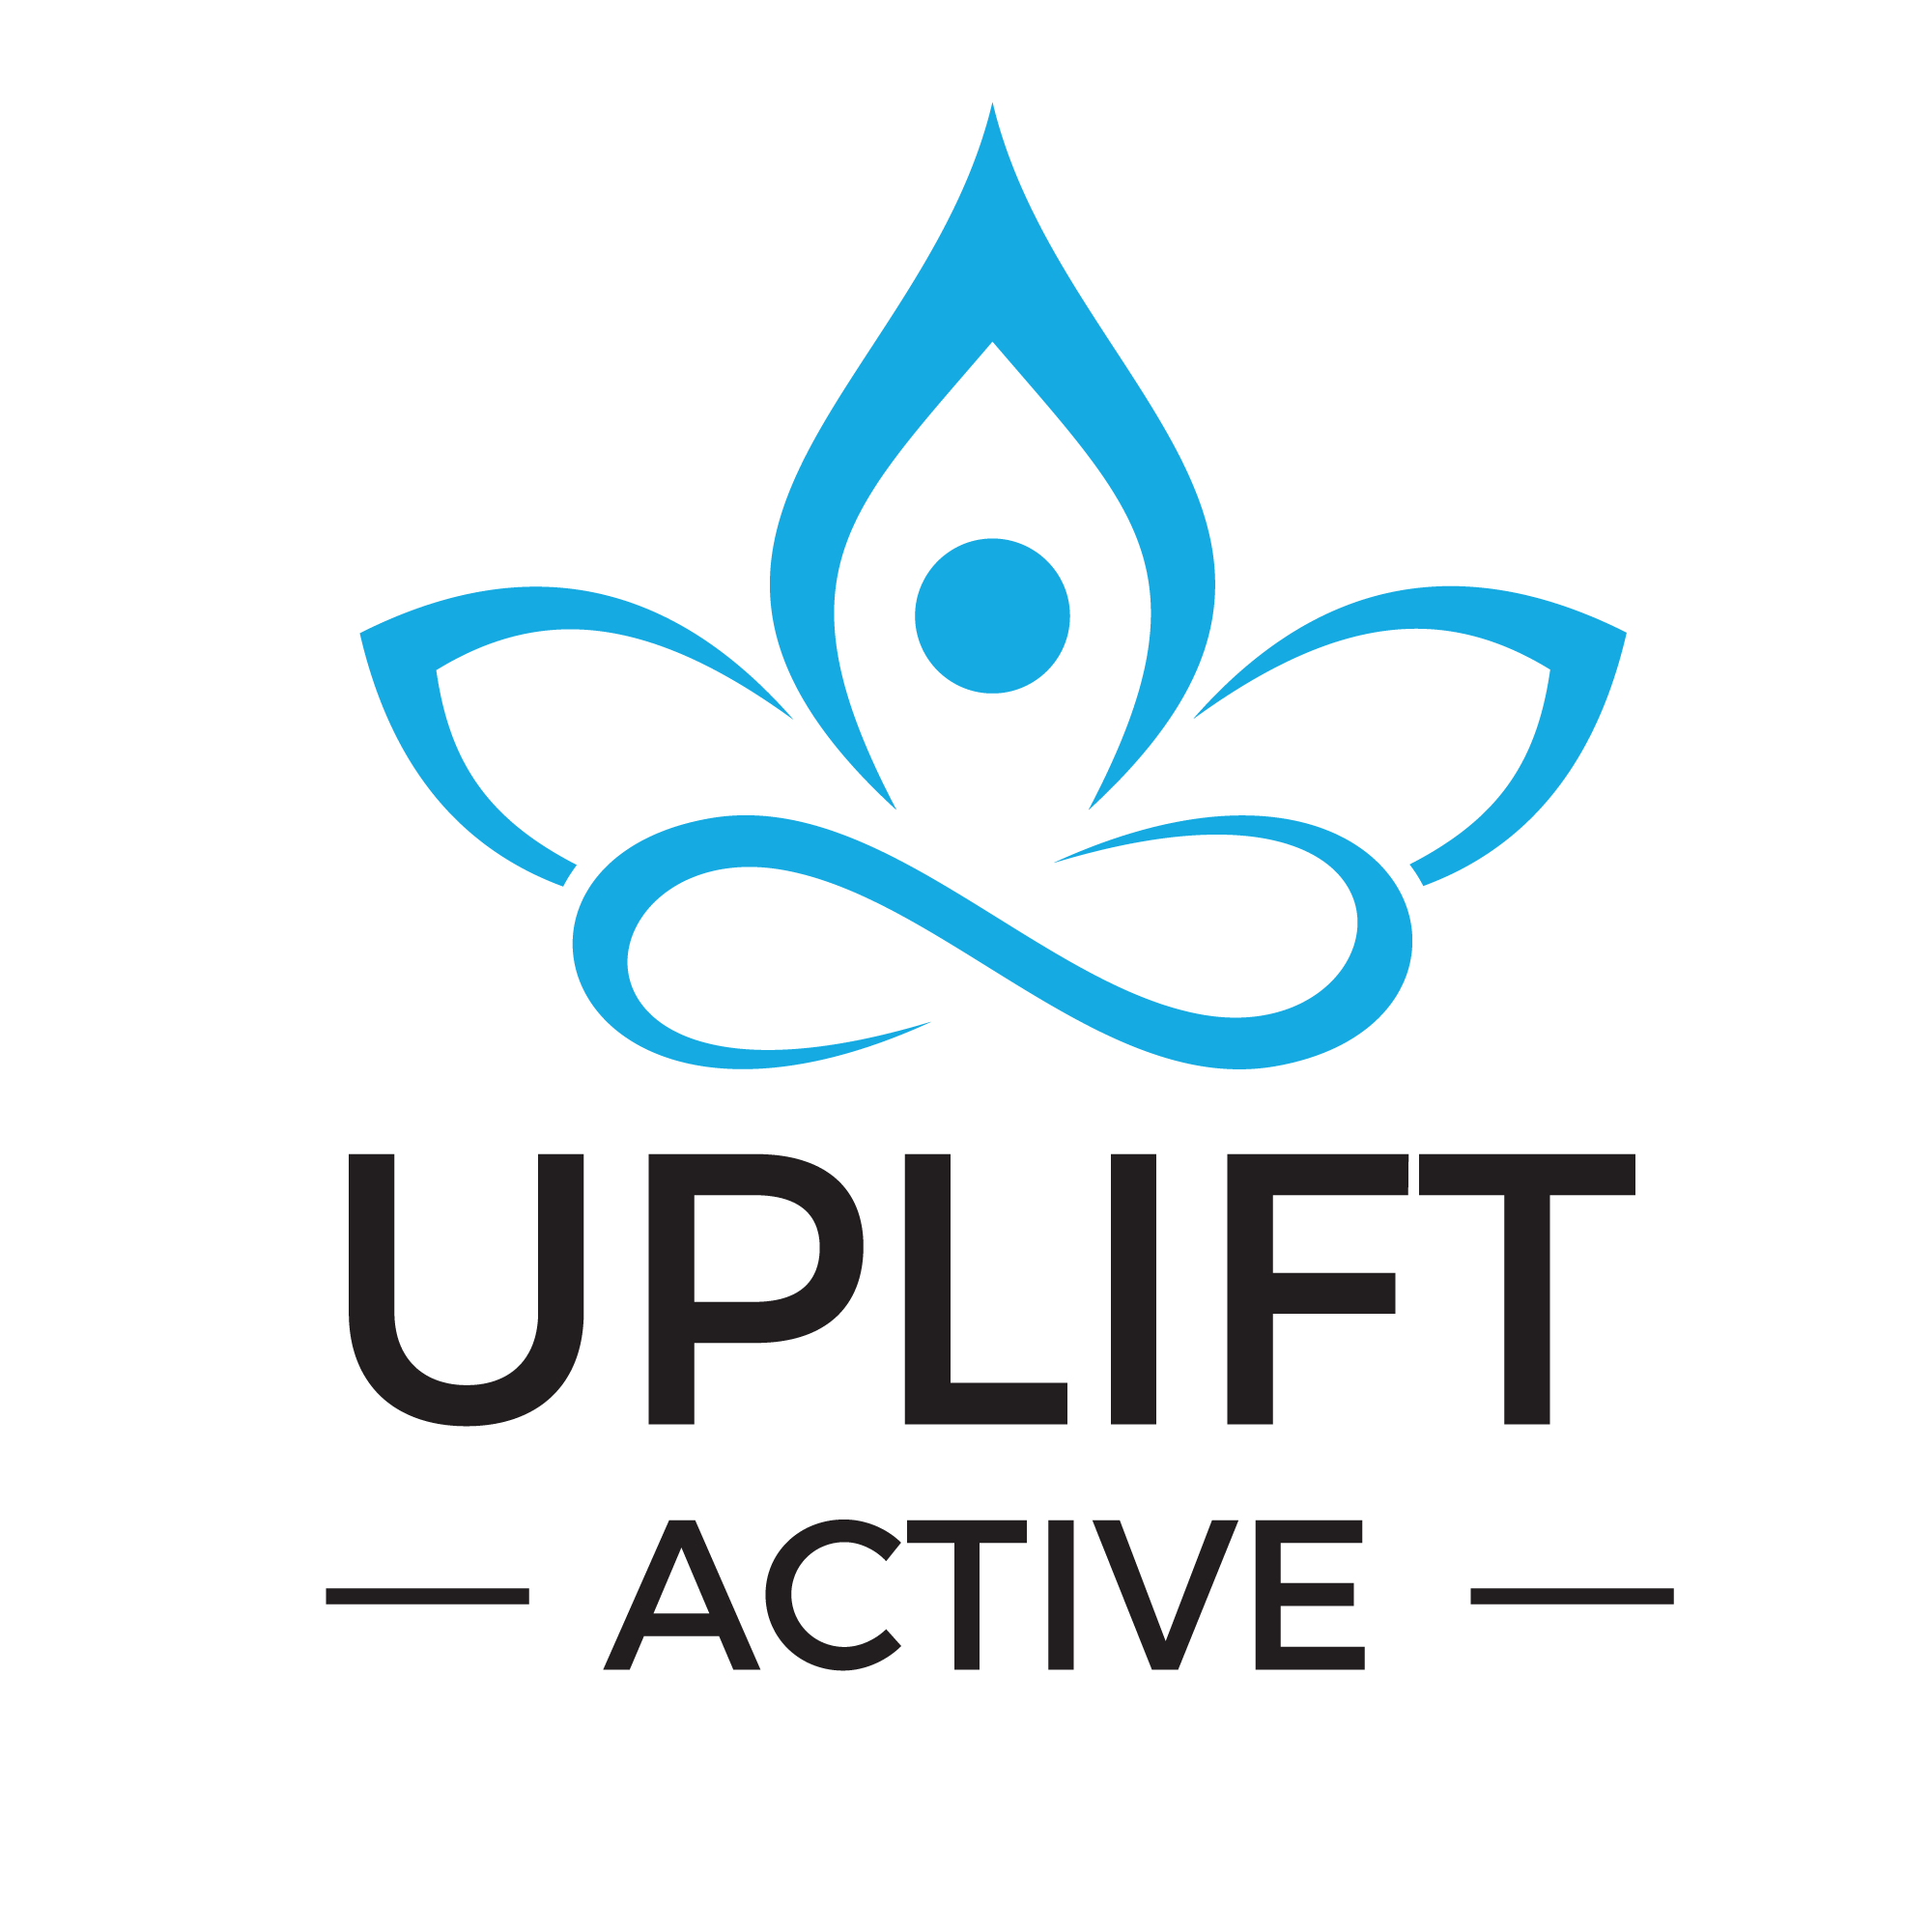 Aerial Yoga Gear is Officially Becoming Uplift Active!